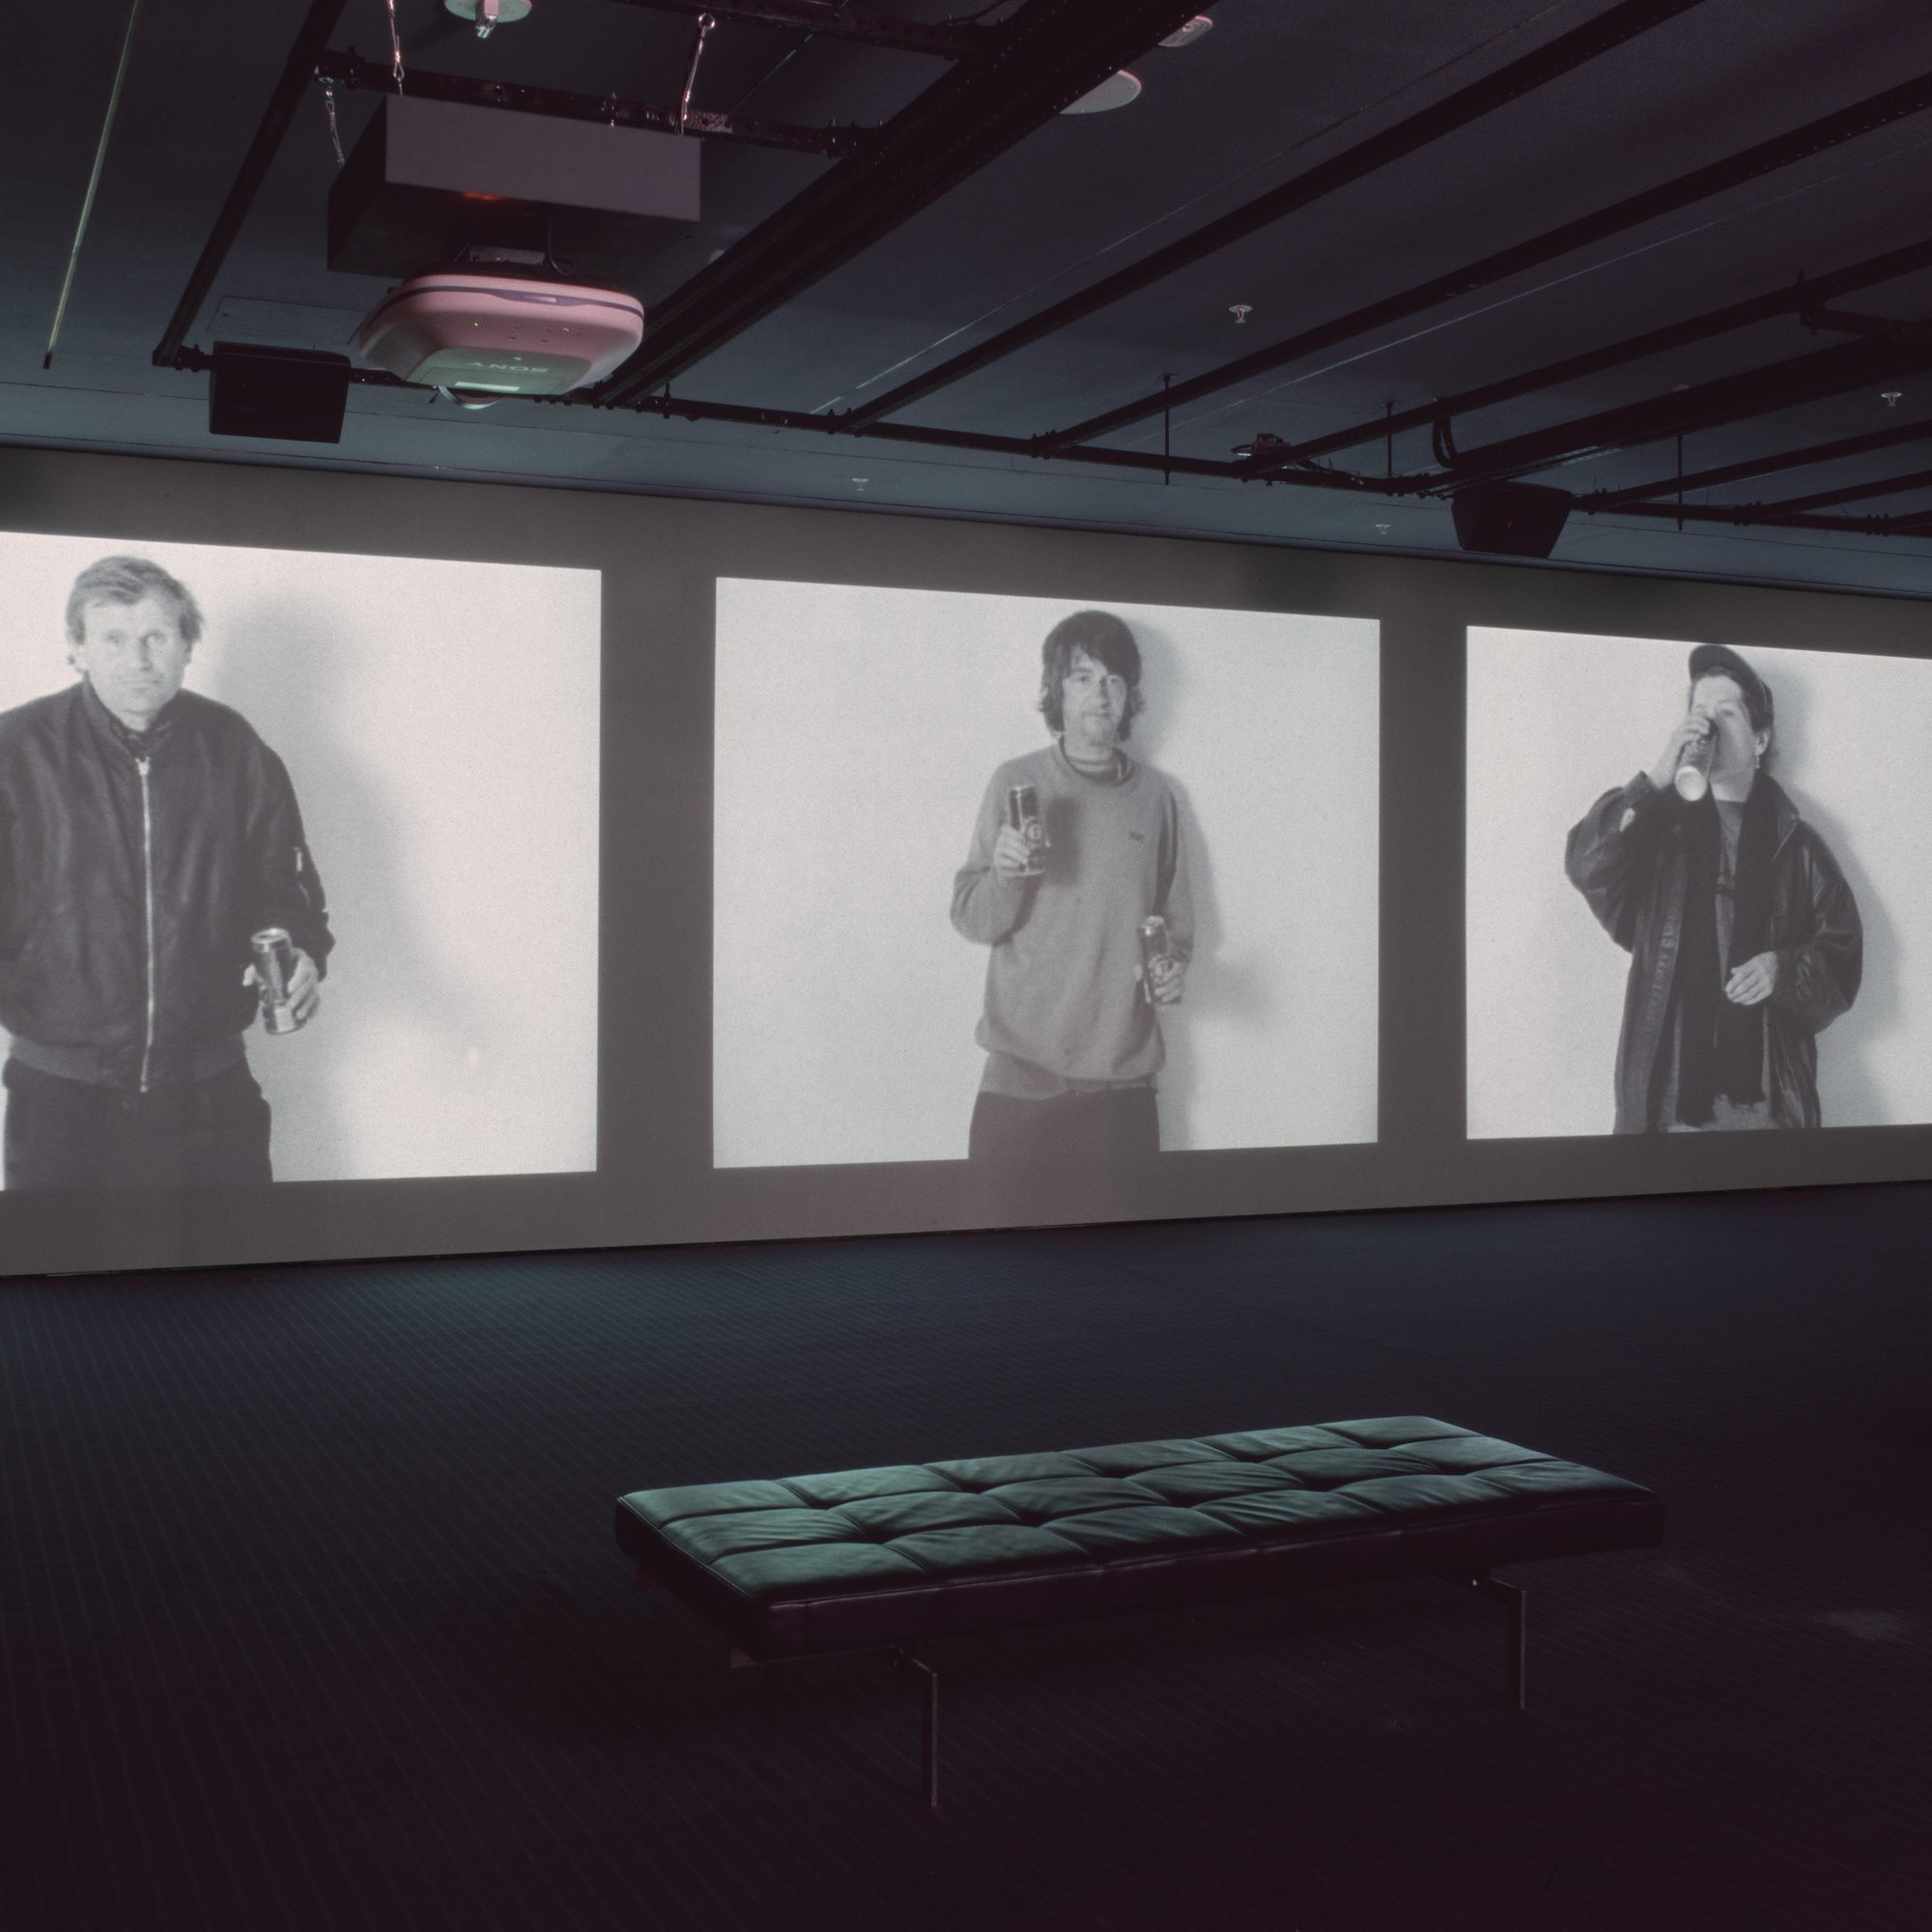 Gillian Wearing. Drunk. 1997–1999. Three-channel video (black and white, sound), 28:35 min. Dimensions variable; approximately 13′ × 37′ × 22' (396.2 × 1127.8 × 670.6 cm). Gift of Nina and Gordon Bunshaft, The Ken and Judith Joy Family Foundation, Barbara Foshay, and Margot P. Ernst. © 2016 Gillian Wearing